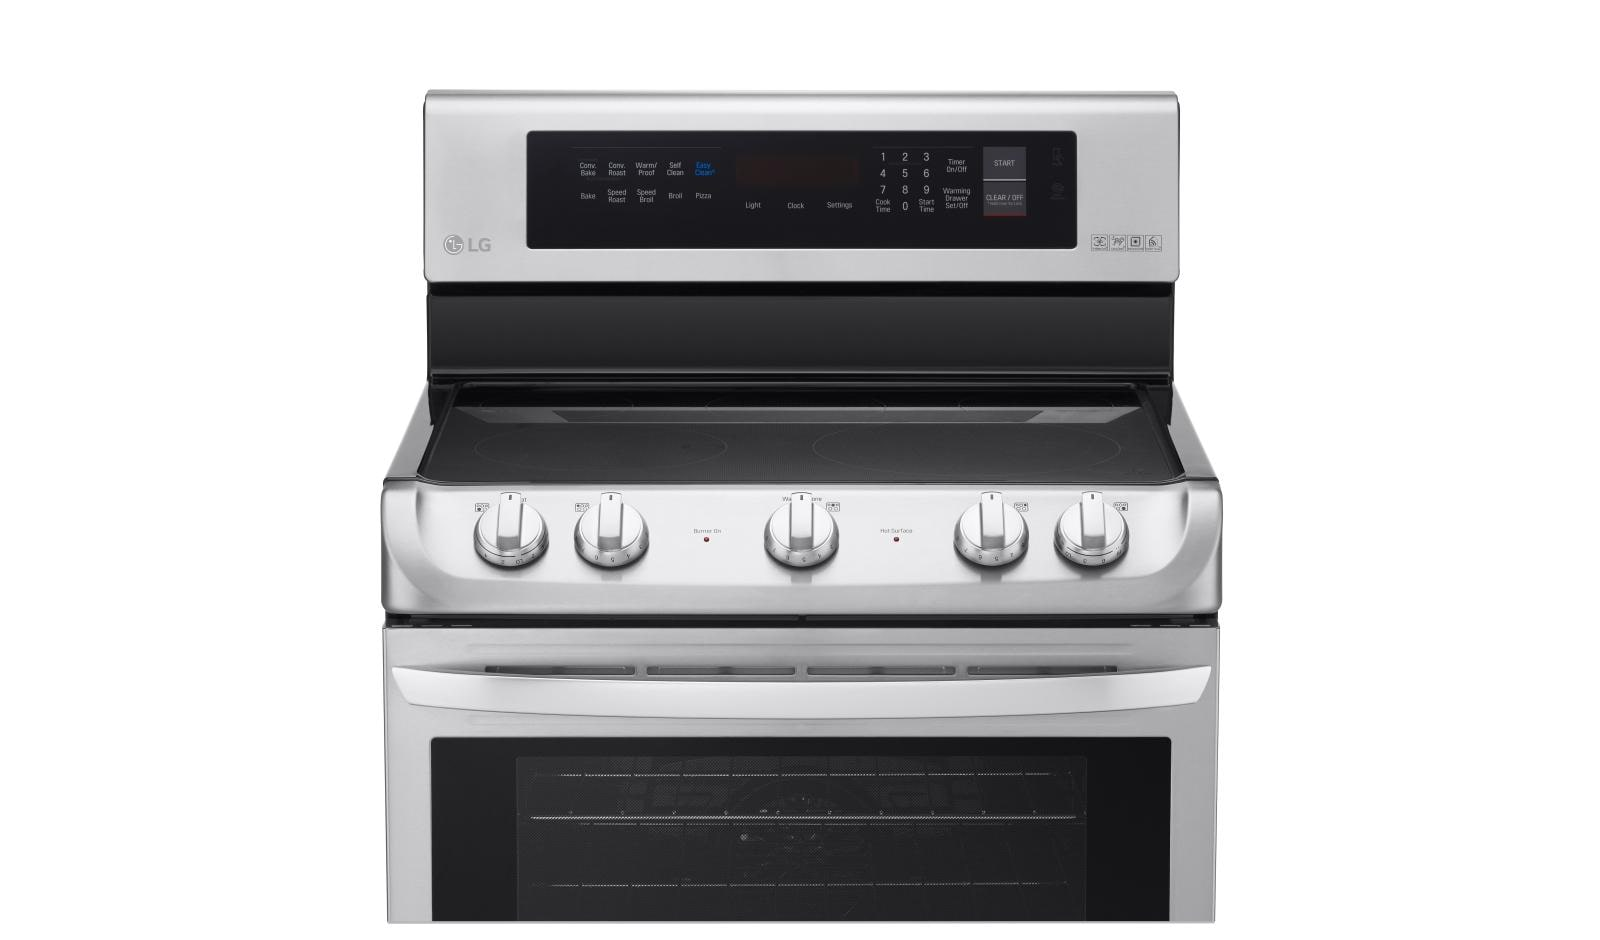 passion cosmo appliances ranges stove kitchen your culinary fuel